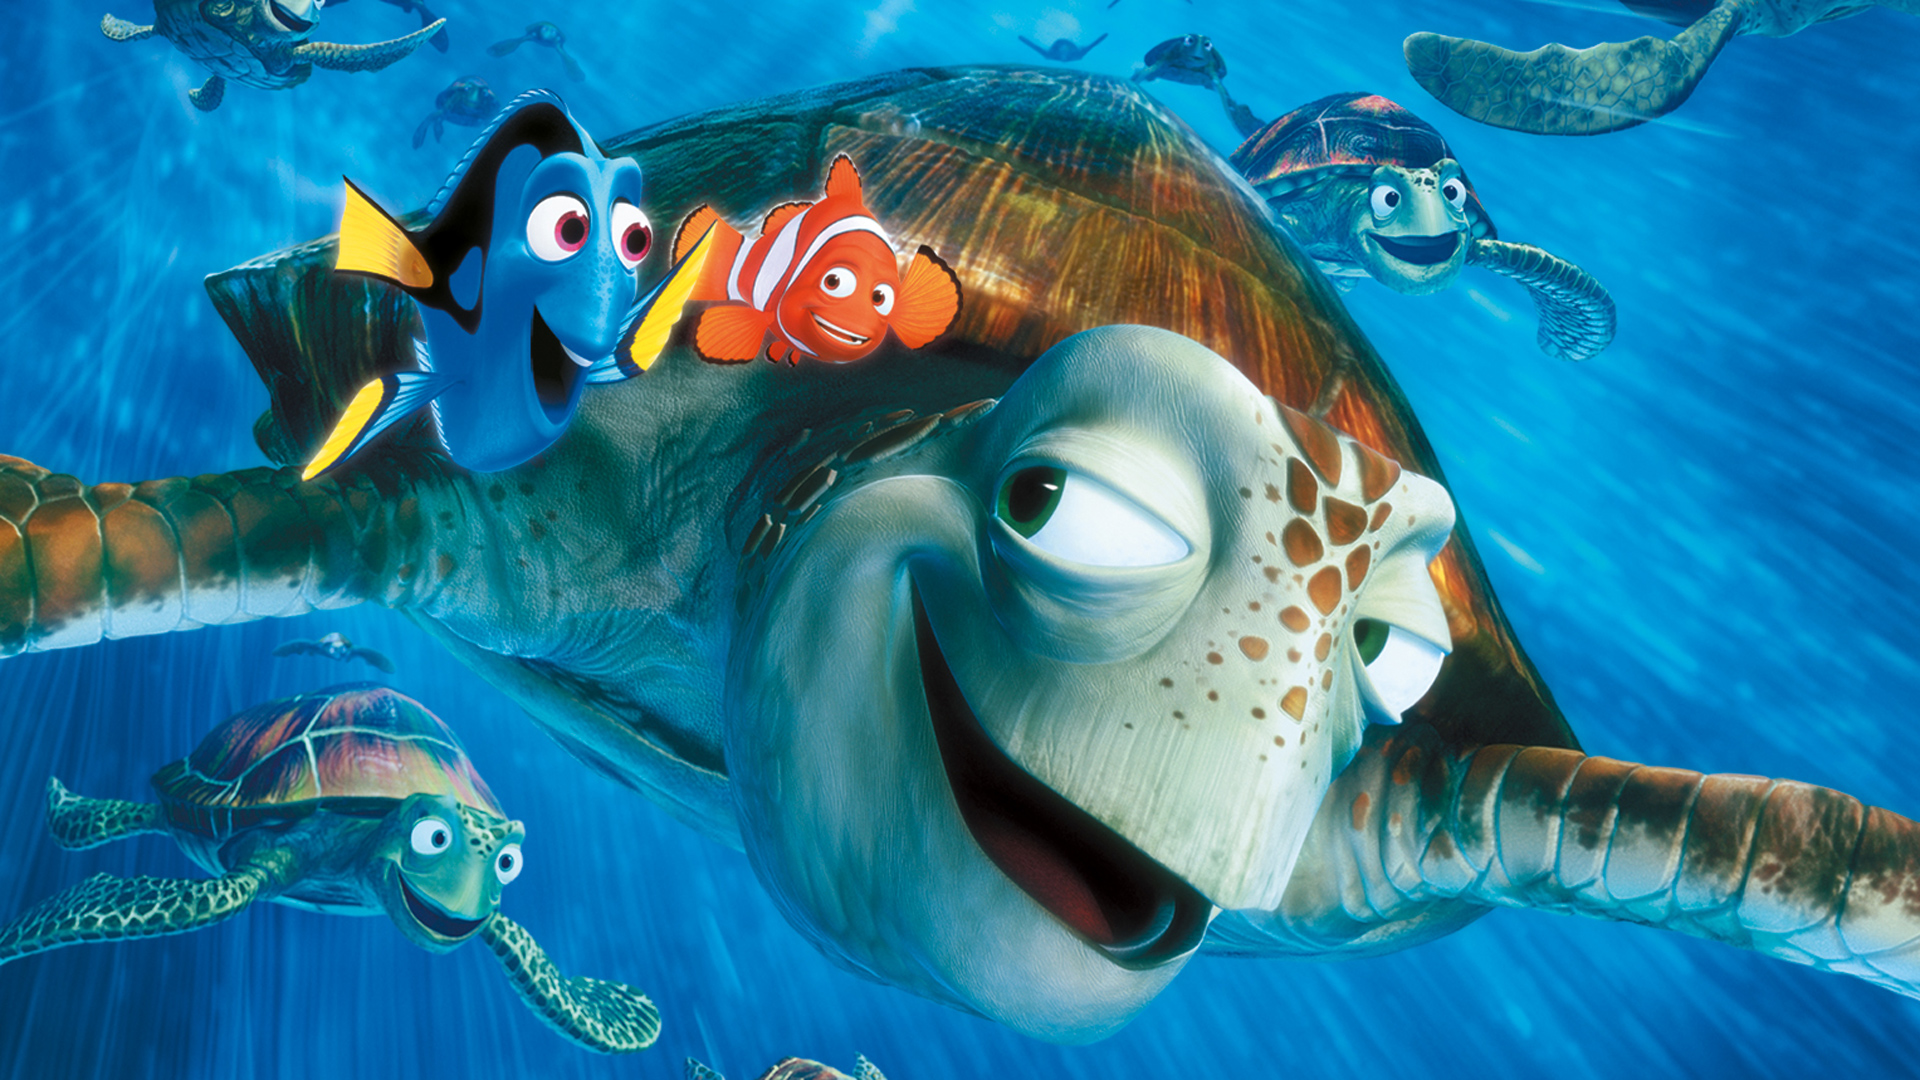 Finding-Nemo-Website-Pic-1.jpg